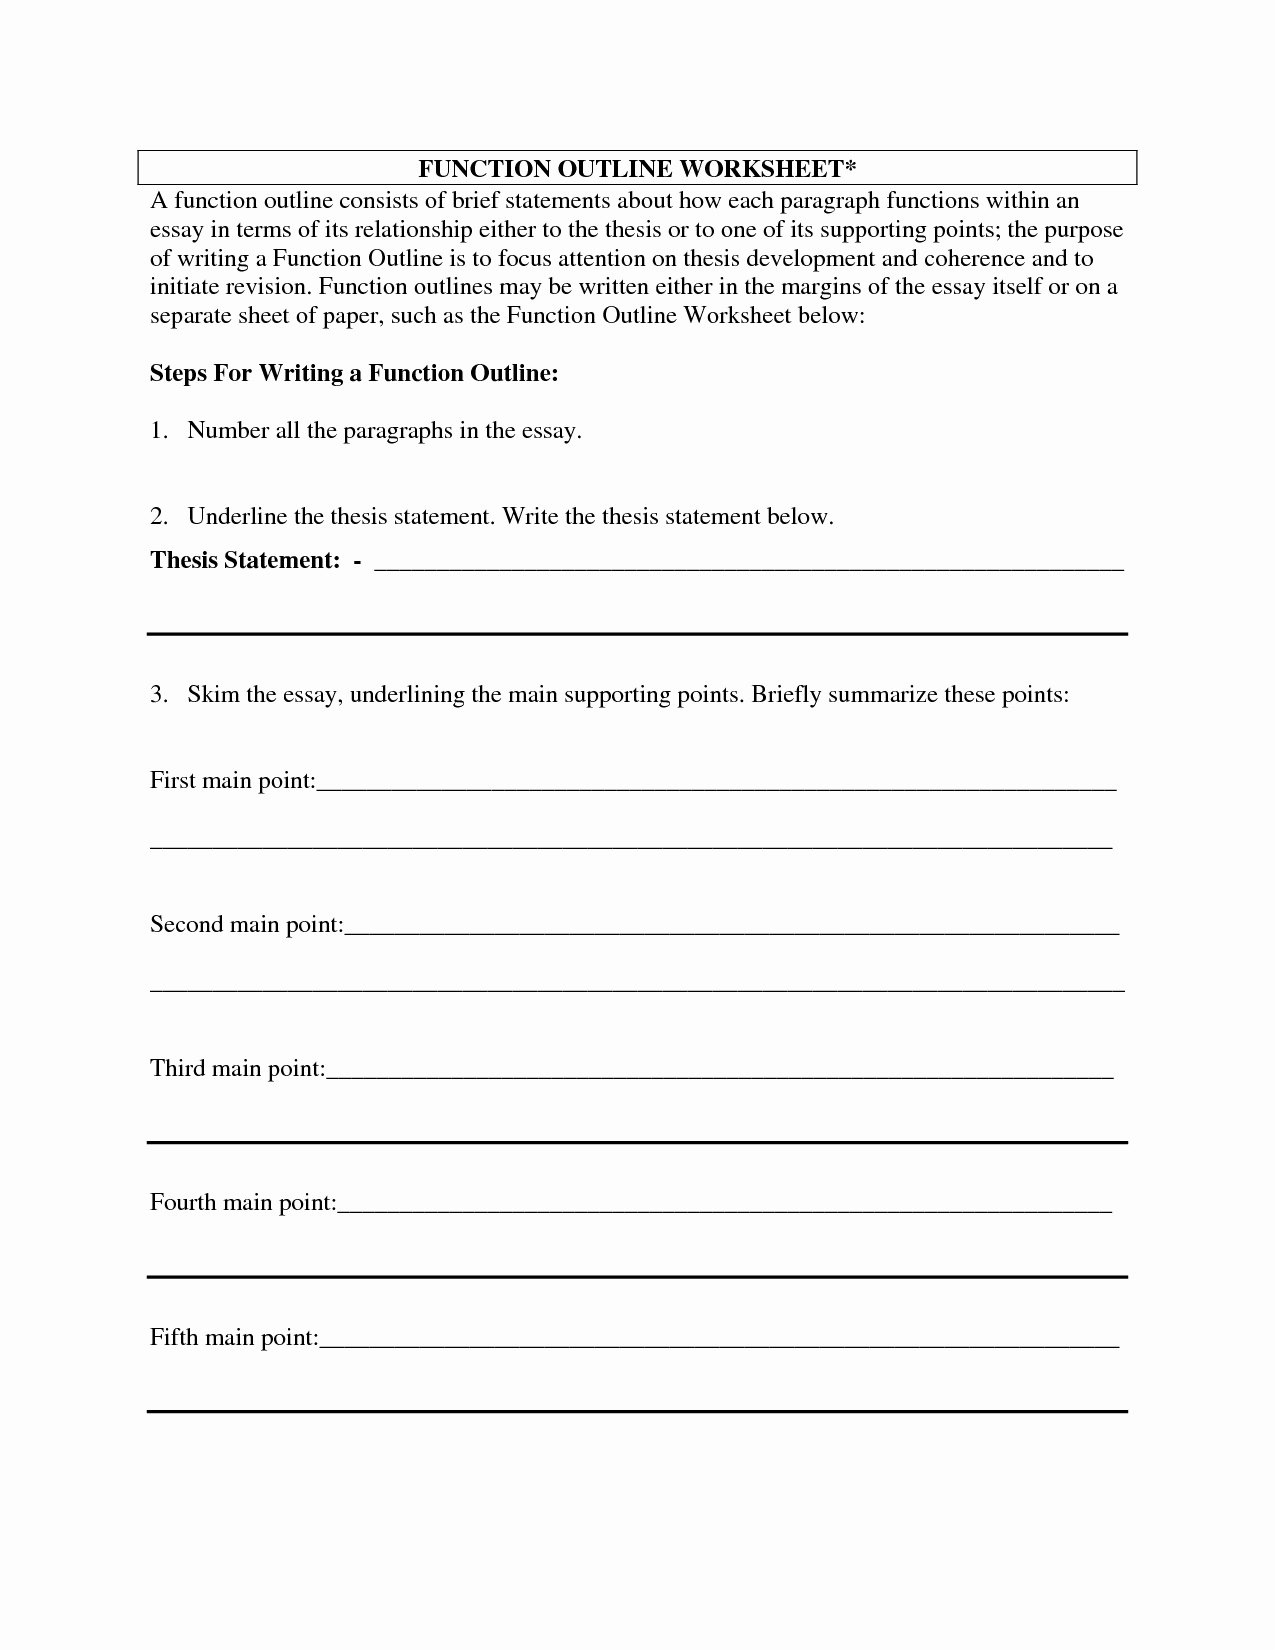 Argumentative Essay Outline Worksheet Fresh 16 Best Of Essay format Worksheet 5 Paragraph